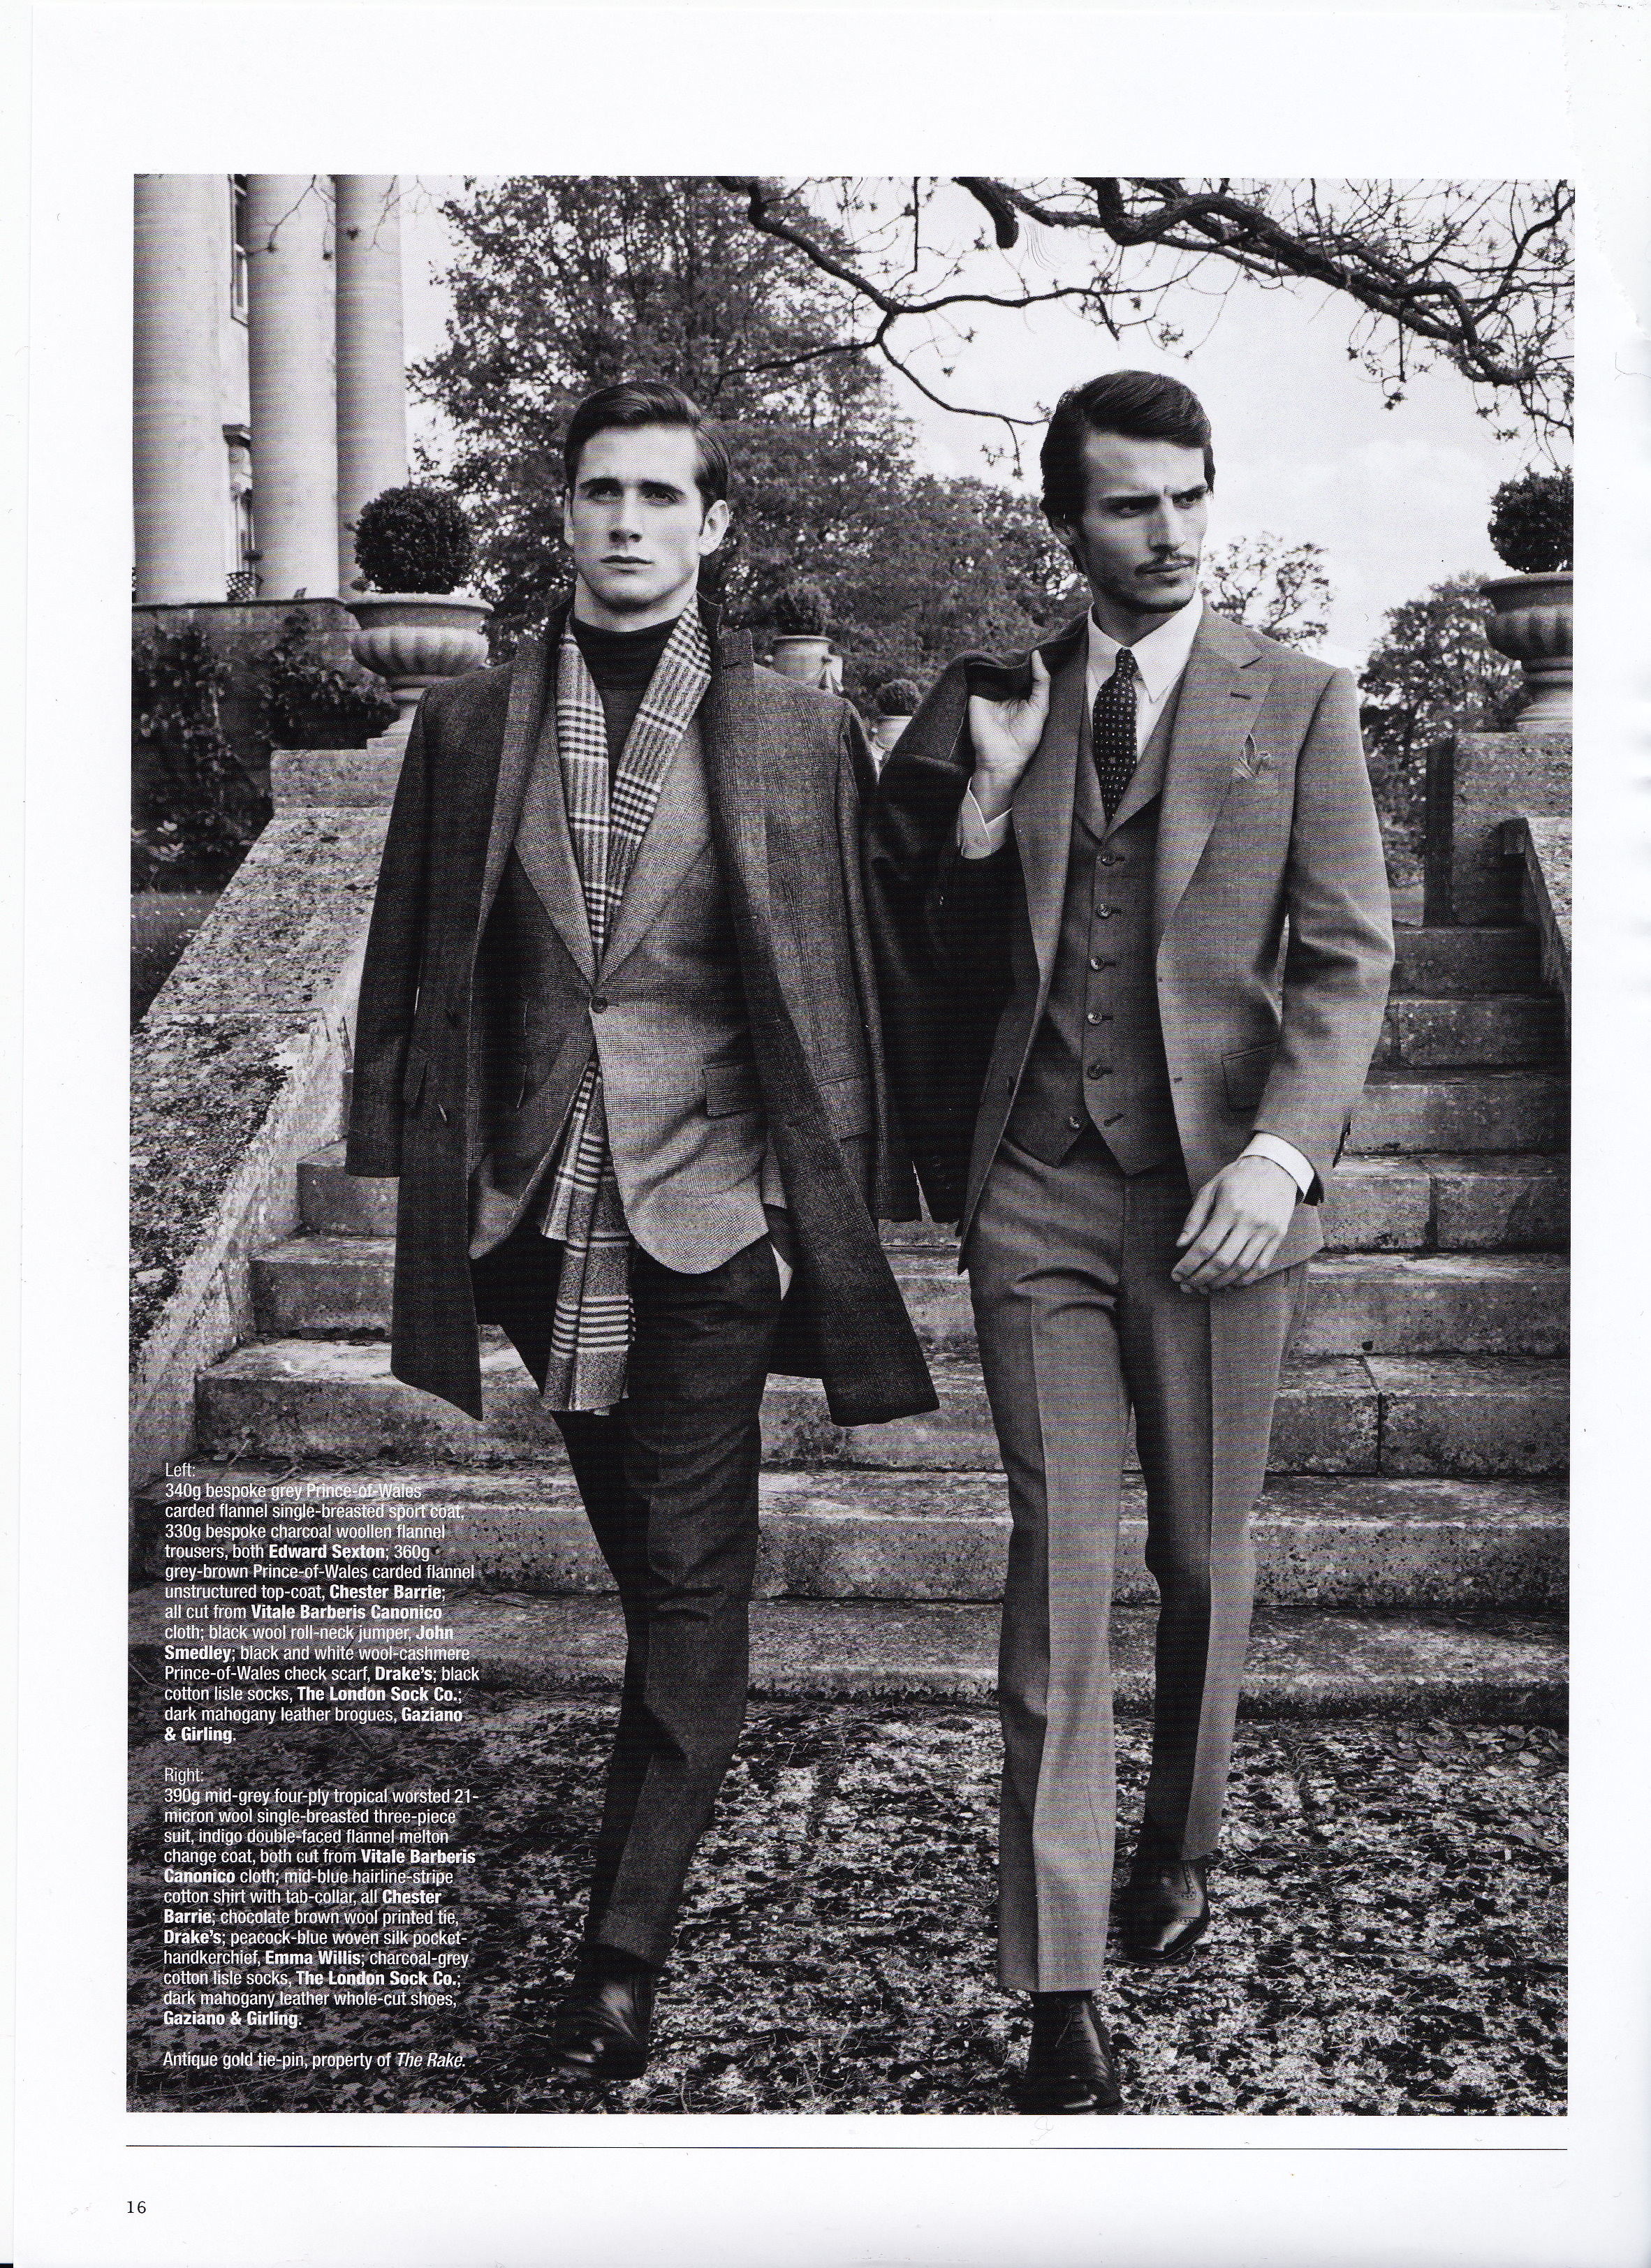 The Rake Magazine Issue 39. On left: Edward Sexton Bespoke grey Prince-Of-Wales carded flannel single breasted sport coat and bespoke charcoal woollen flannel trousers